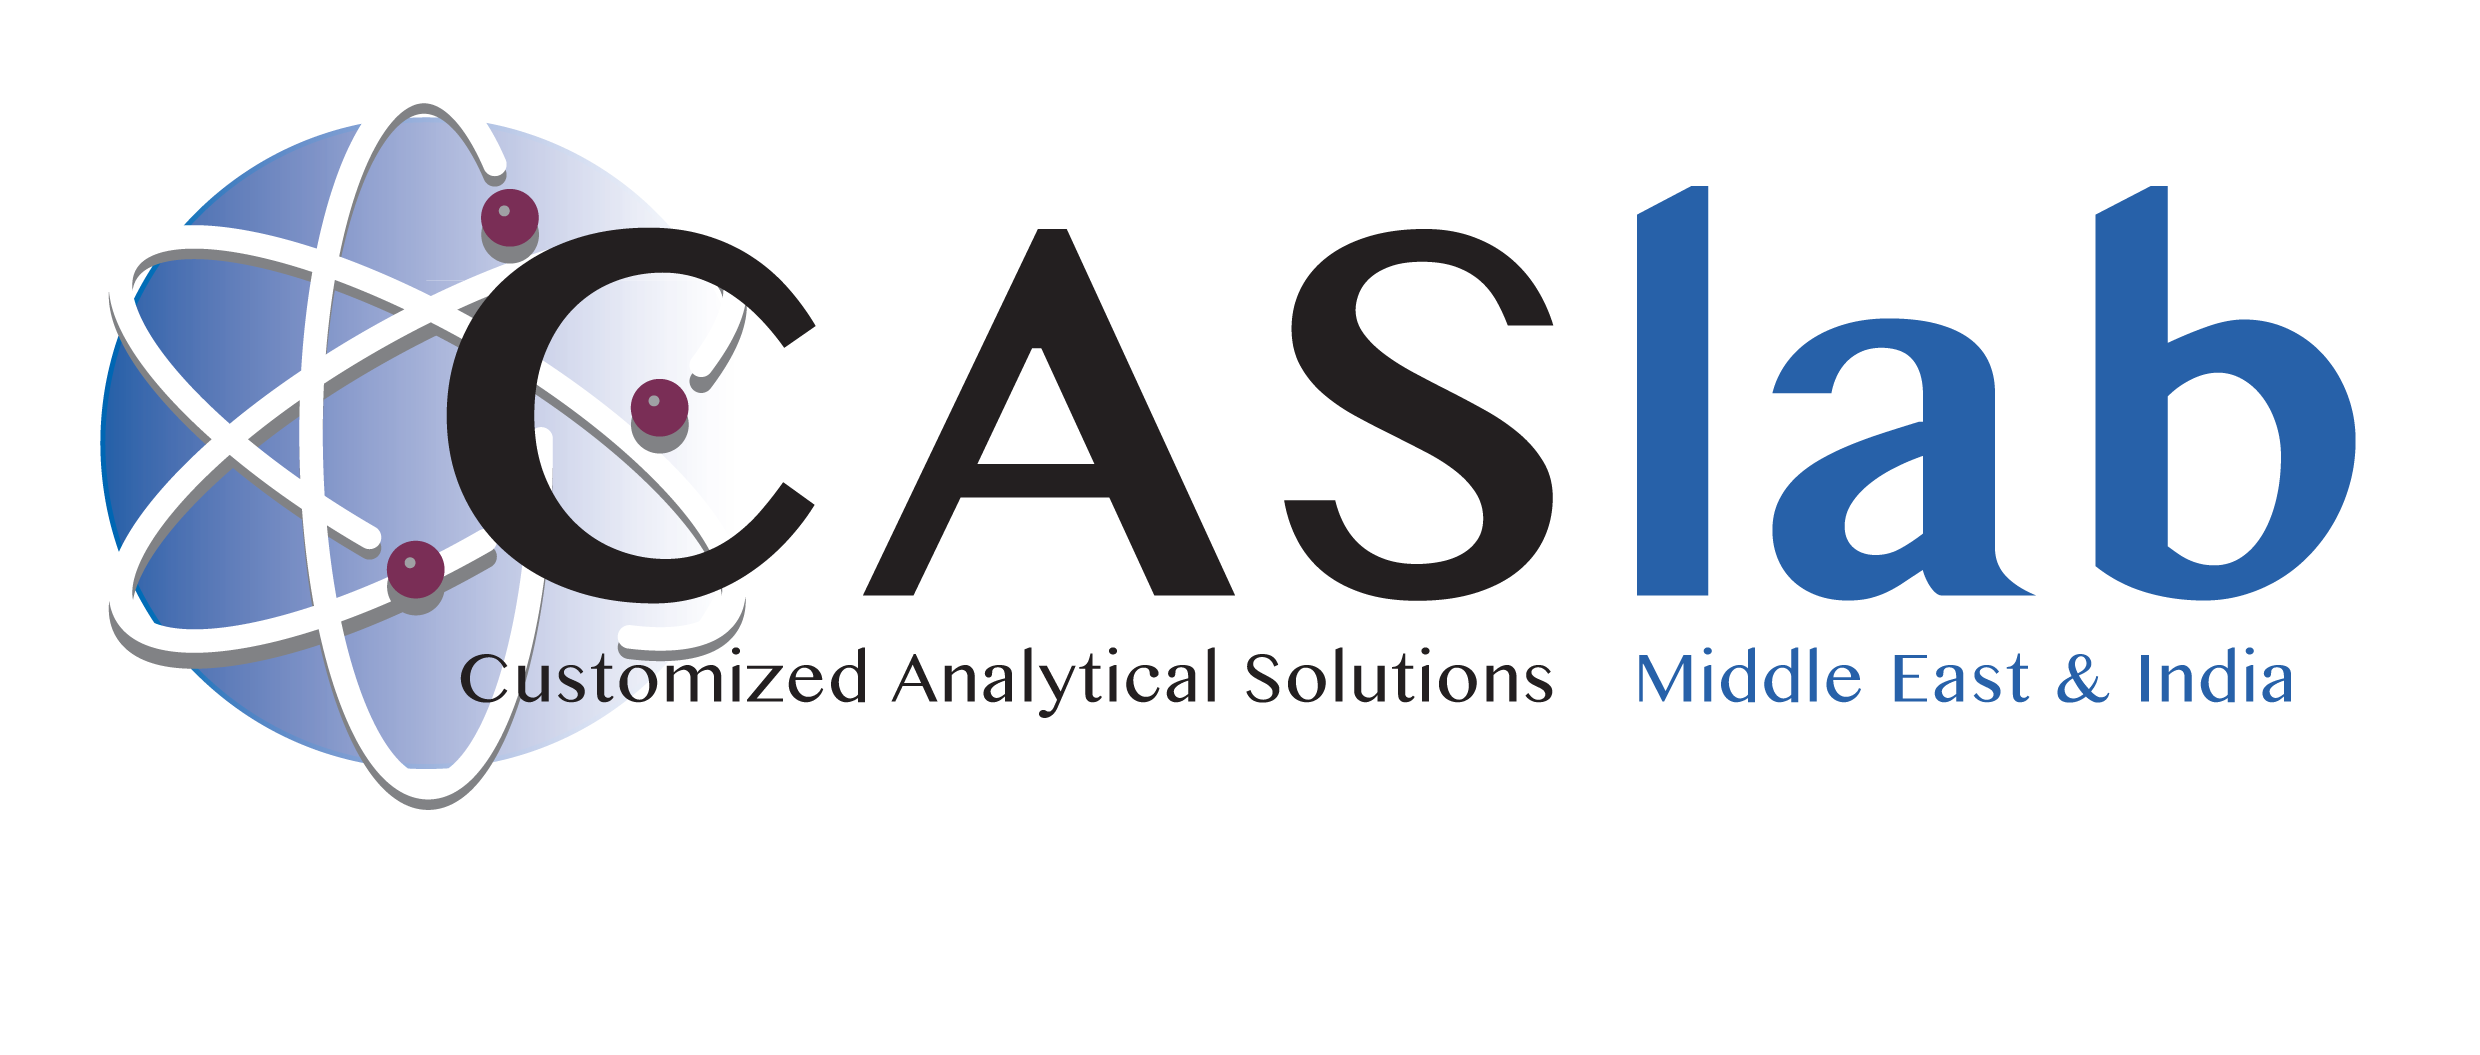 Our Partners - CASlab Middle East & India